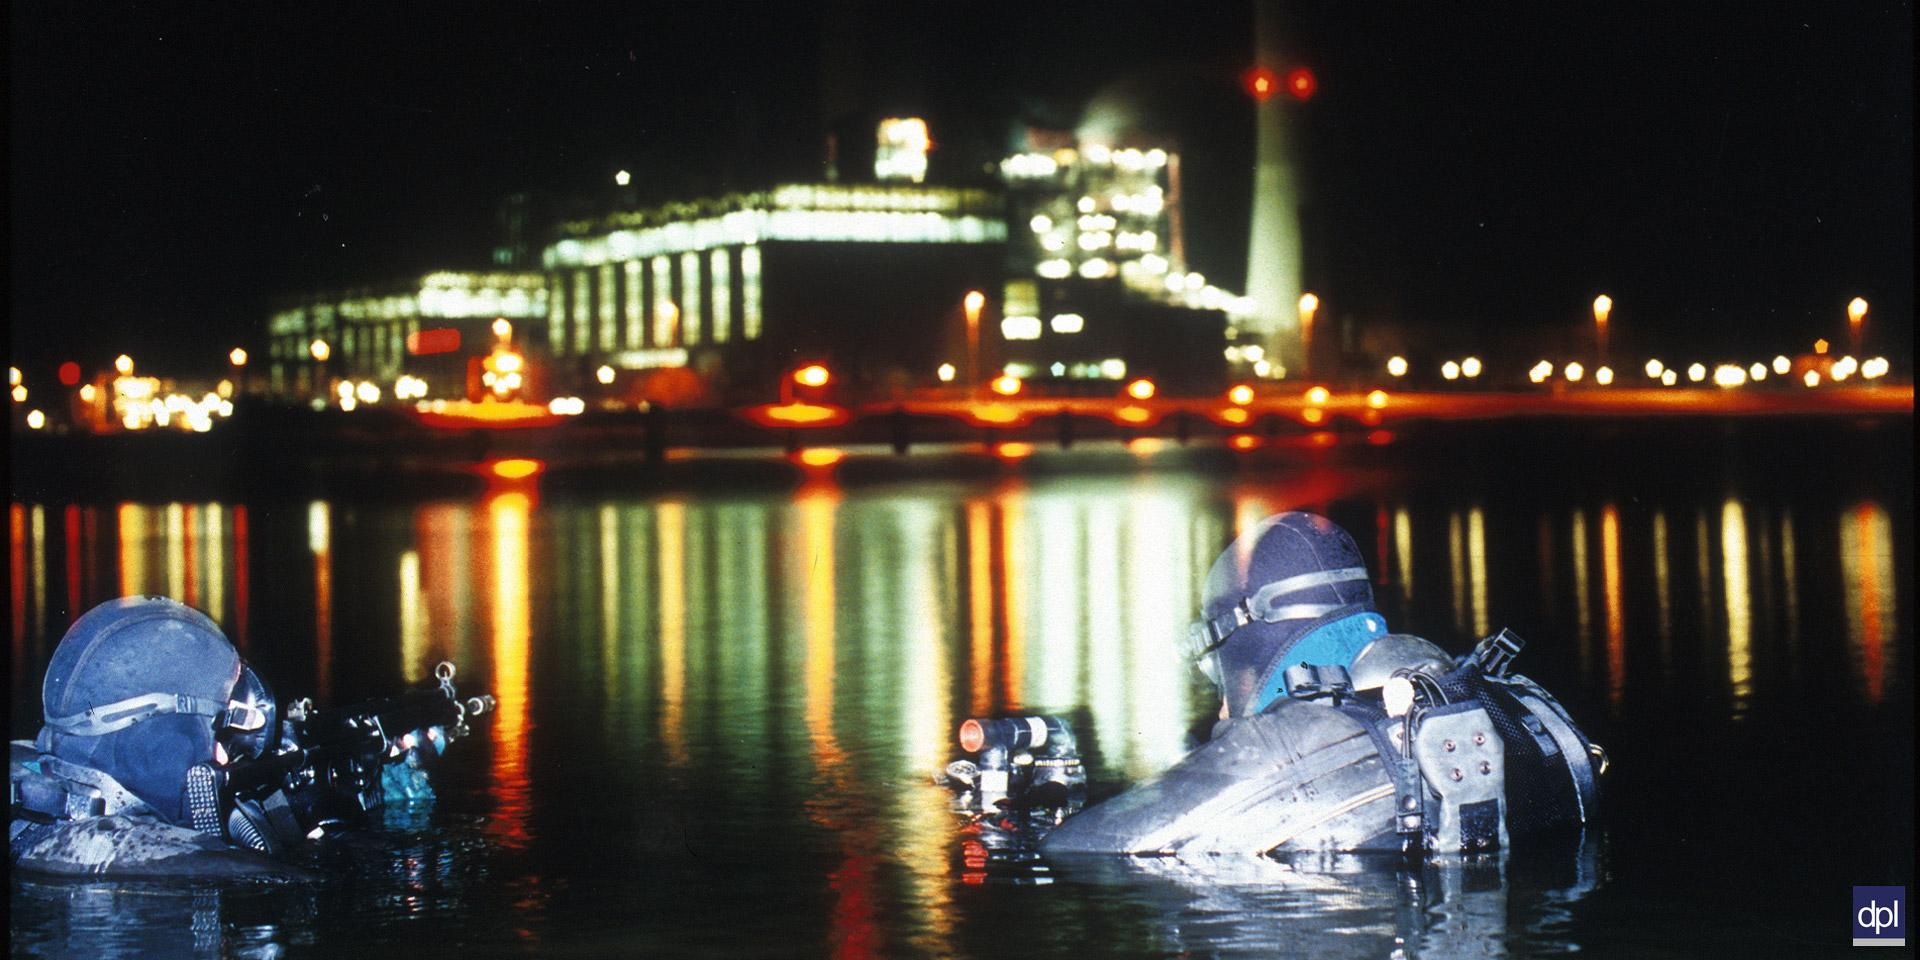 Swimmer canoeist divers pictured during a night-time exercise, c2000